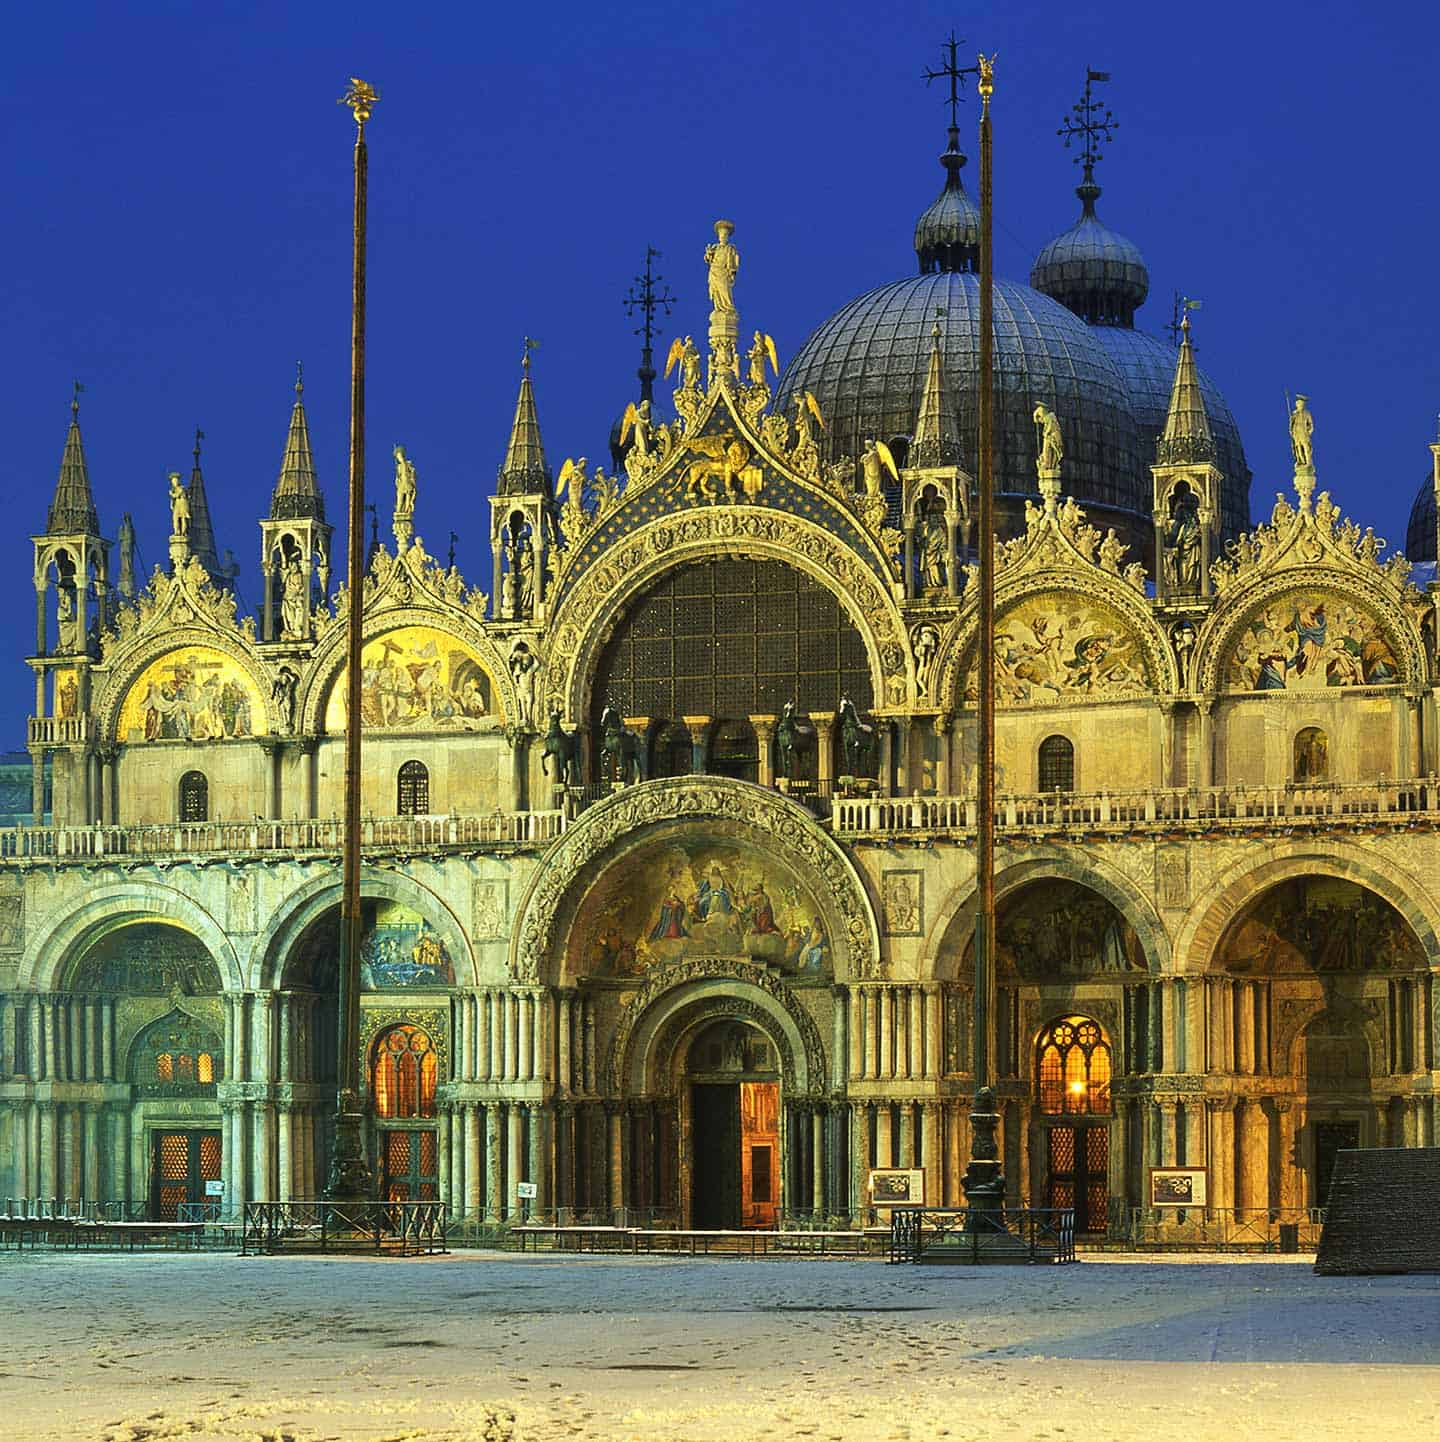 Image of San Marco Basilica in the snow